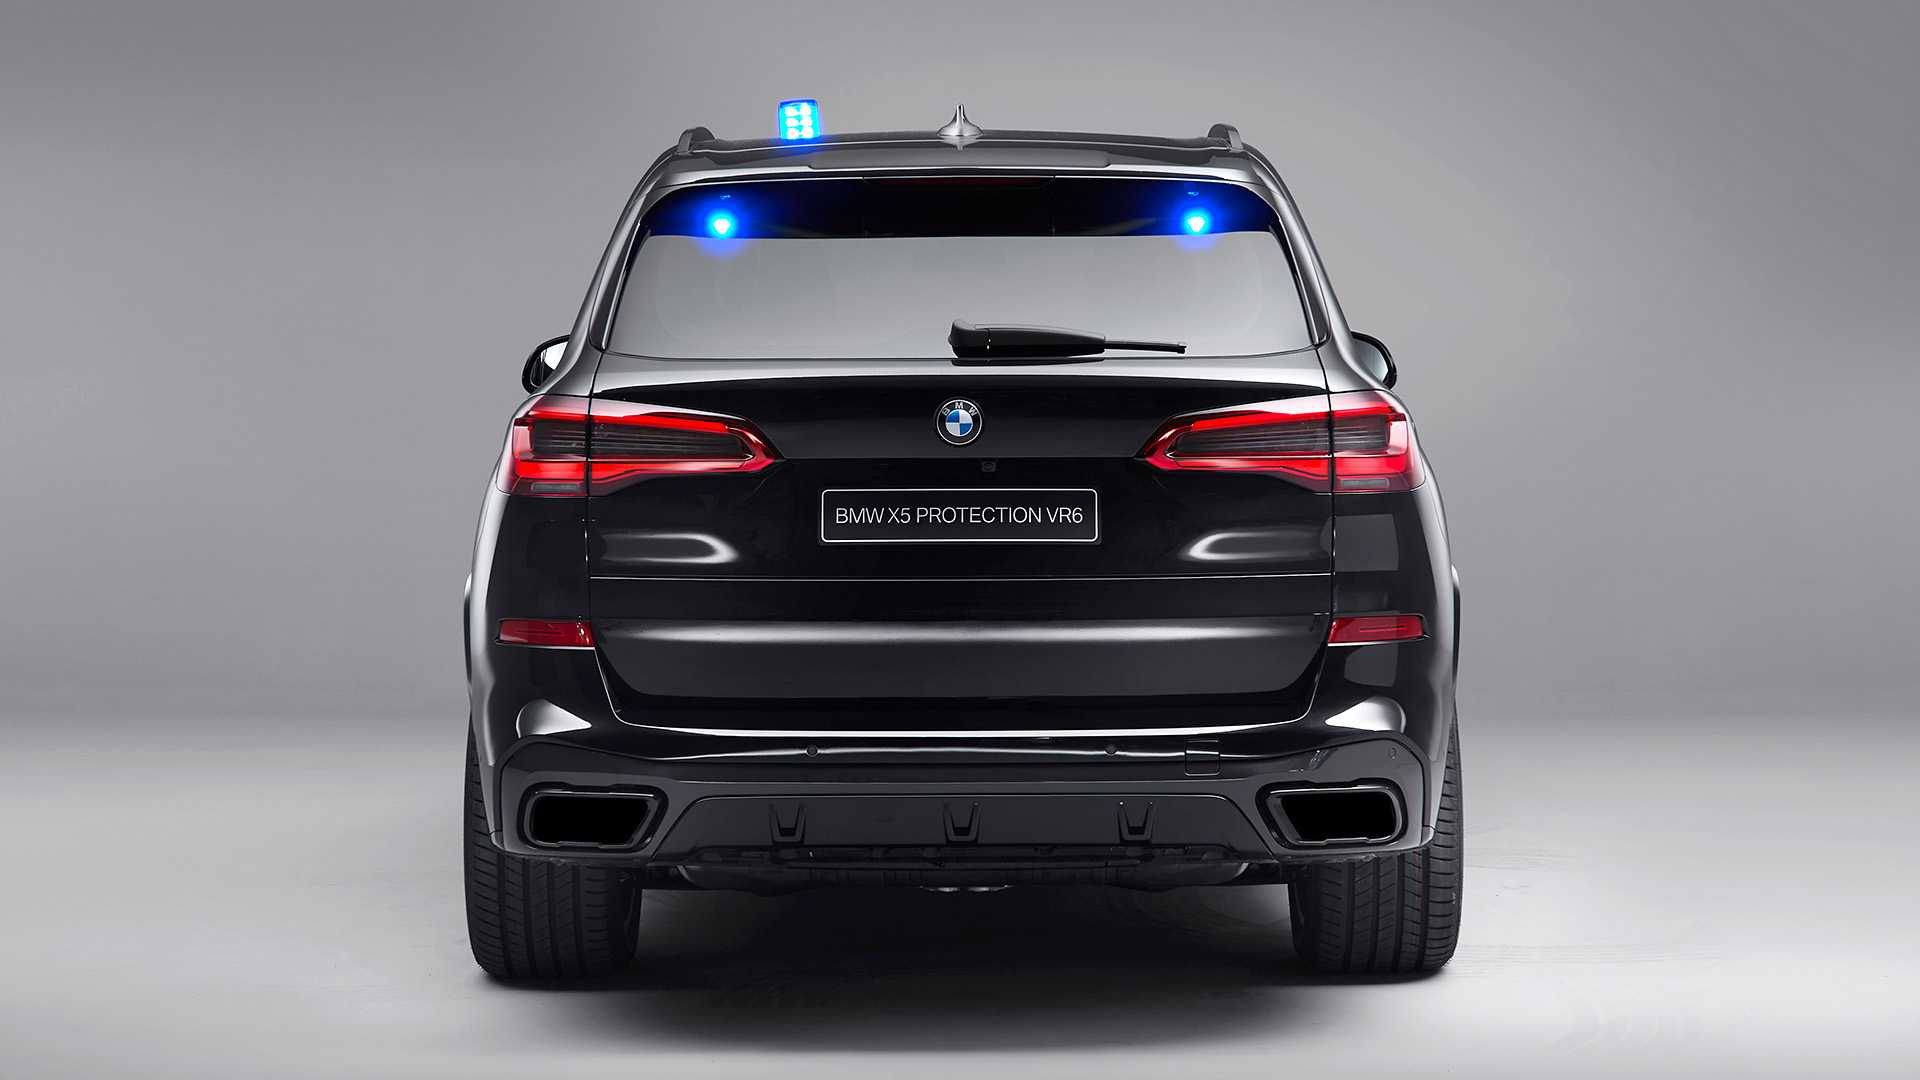 2020 BMW X5 Protection VR6 (Armored Vehicle) Rear Wallpapers (9)